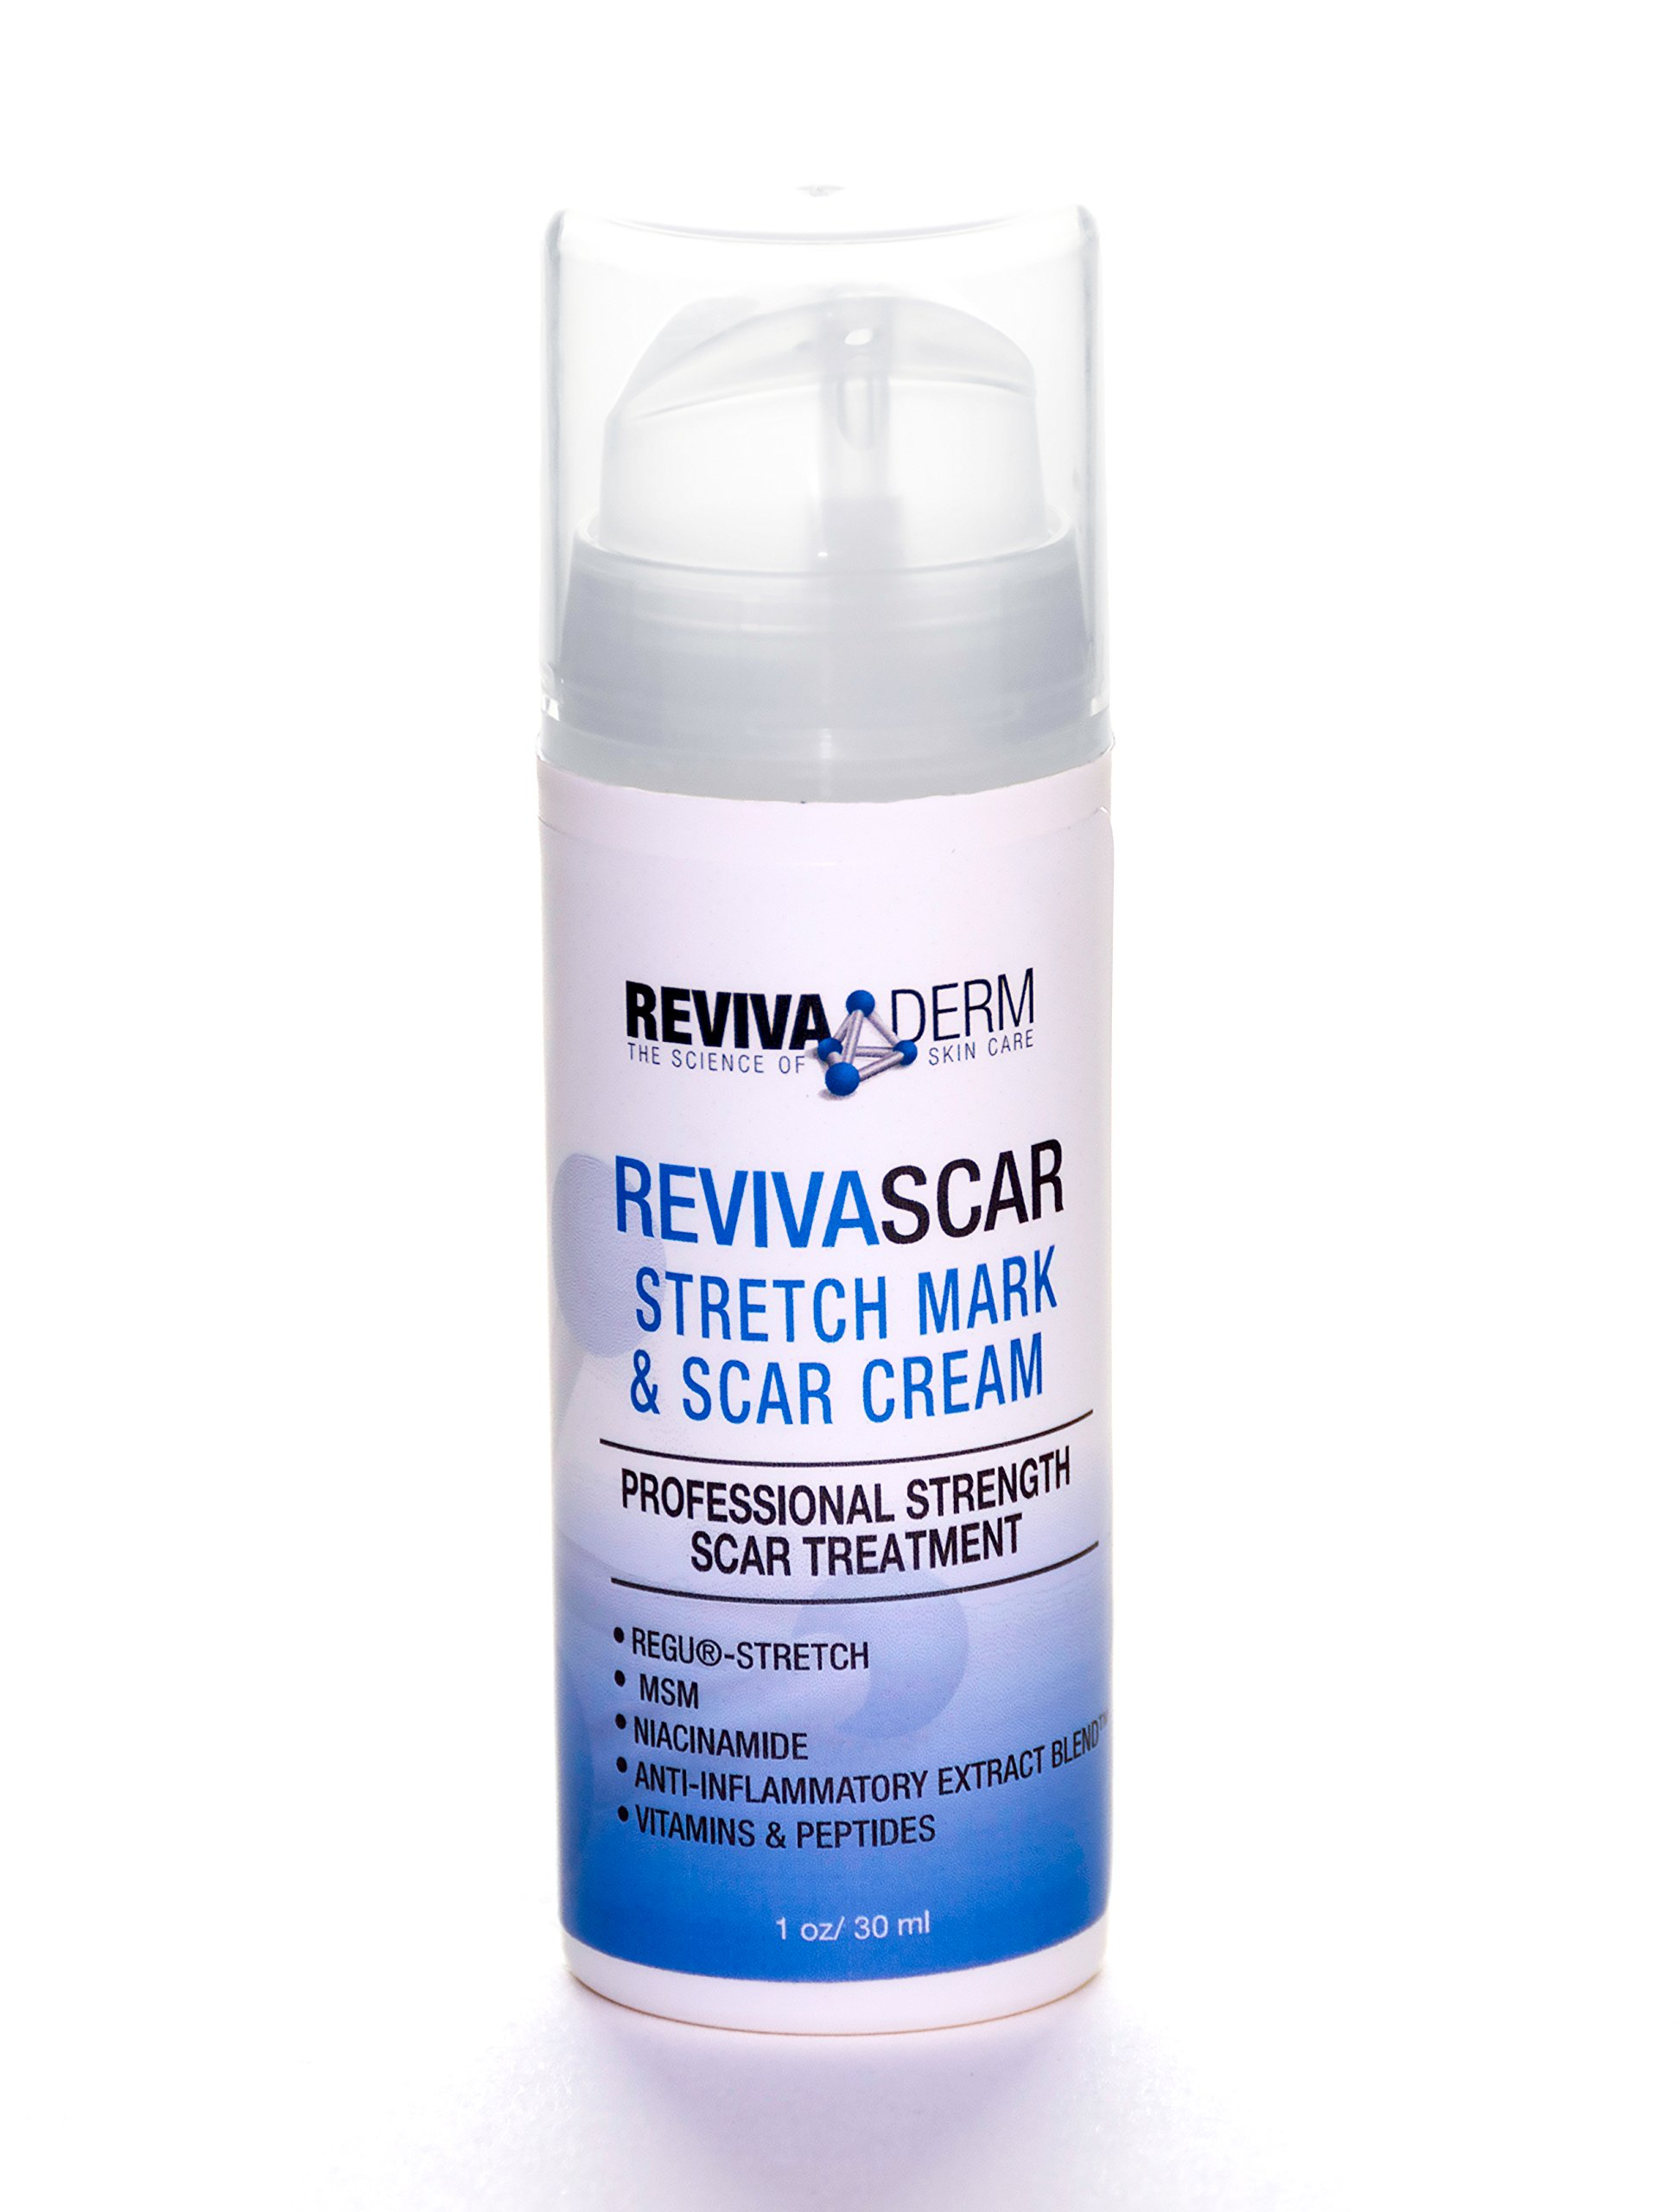 Revivaderm RevivaScar Stretch Mark & Scar Cream – Professional Strength Scar Treatment Specially Developed For Treatment Of Stretch Marks, Acne Scars, Skin Renewal, Minor Scarring, Repair- 1 oz